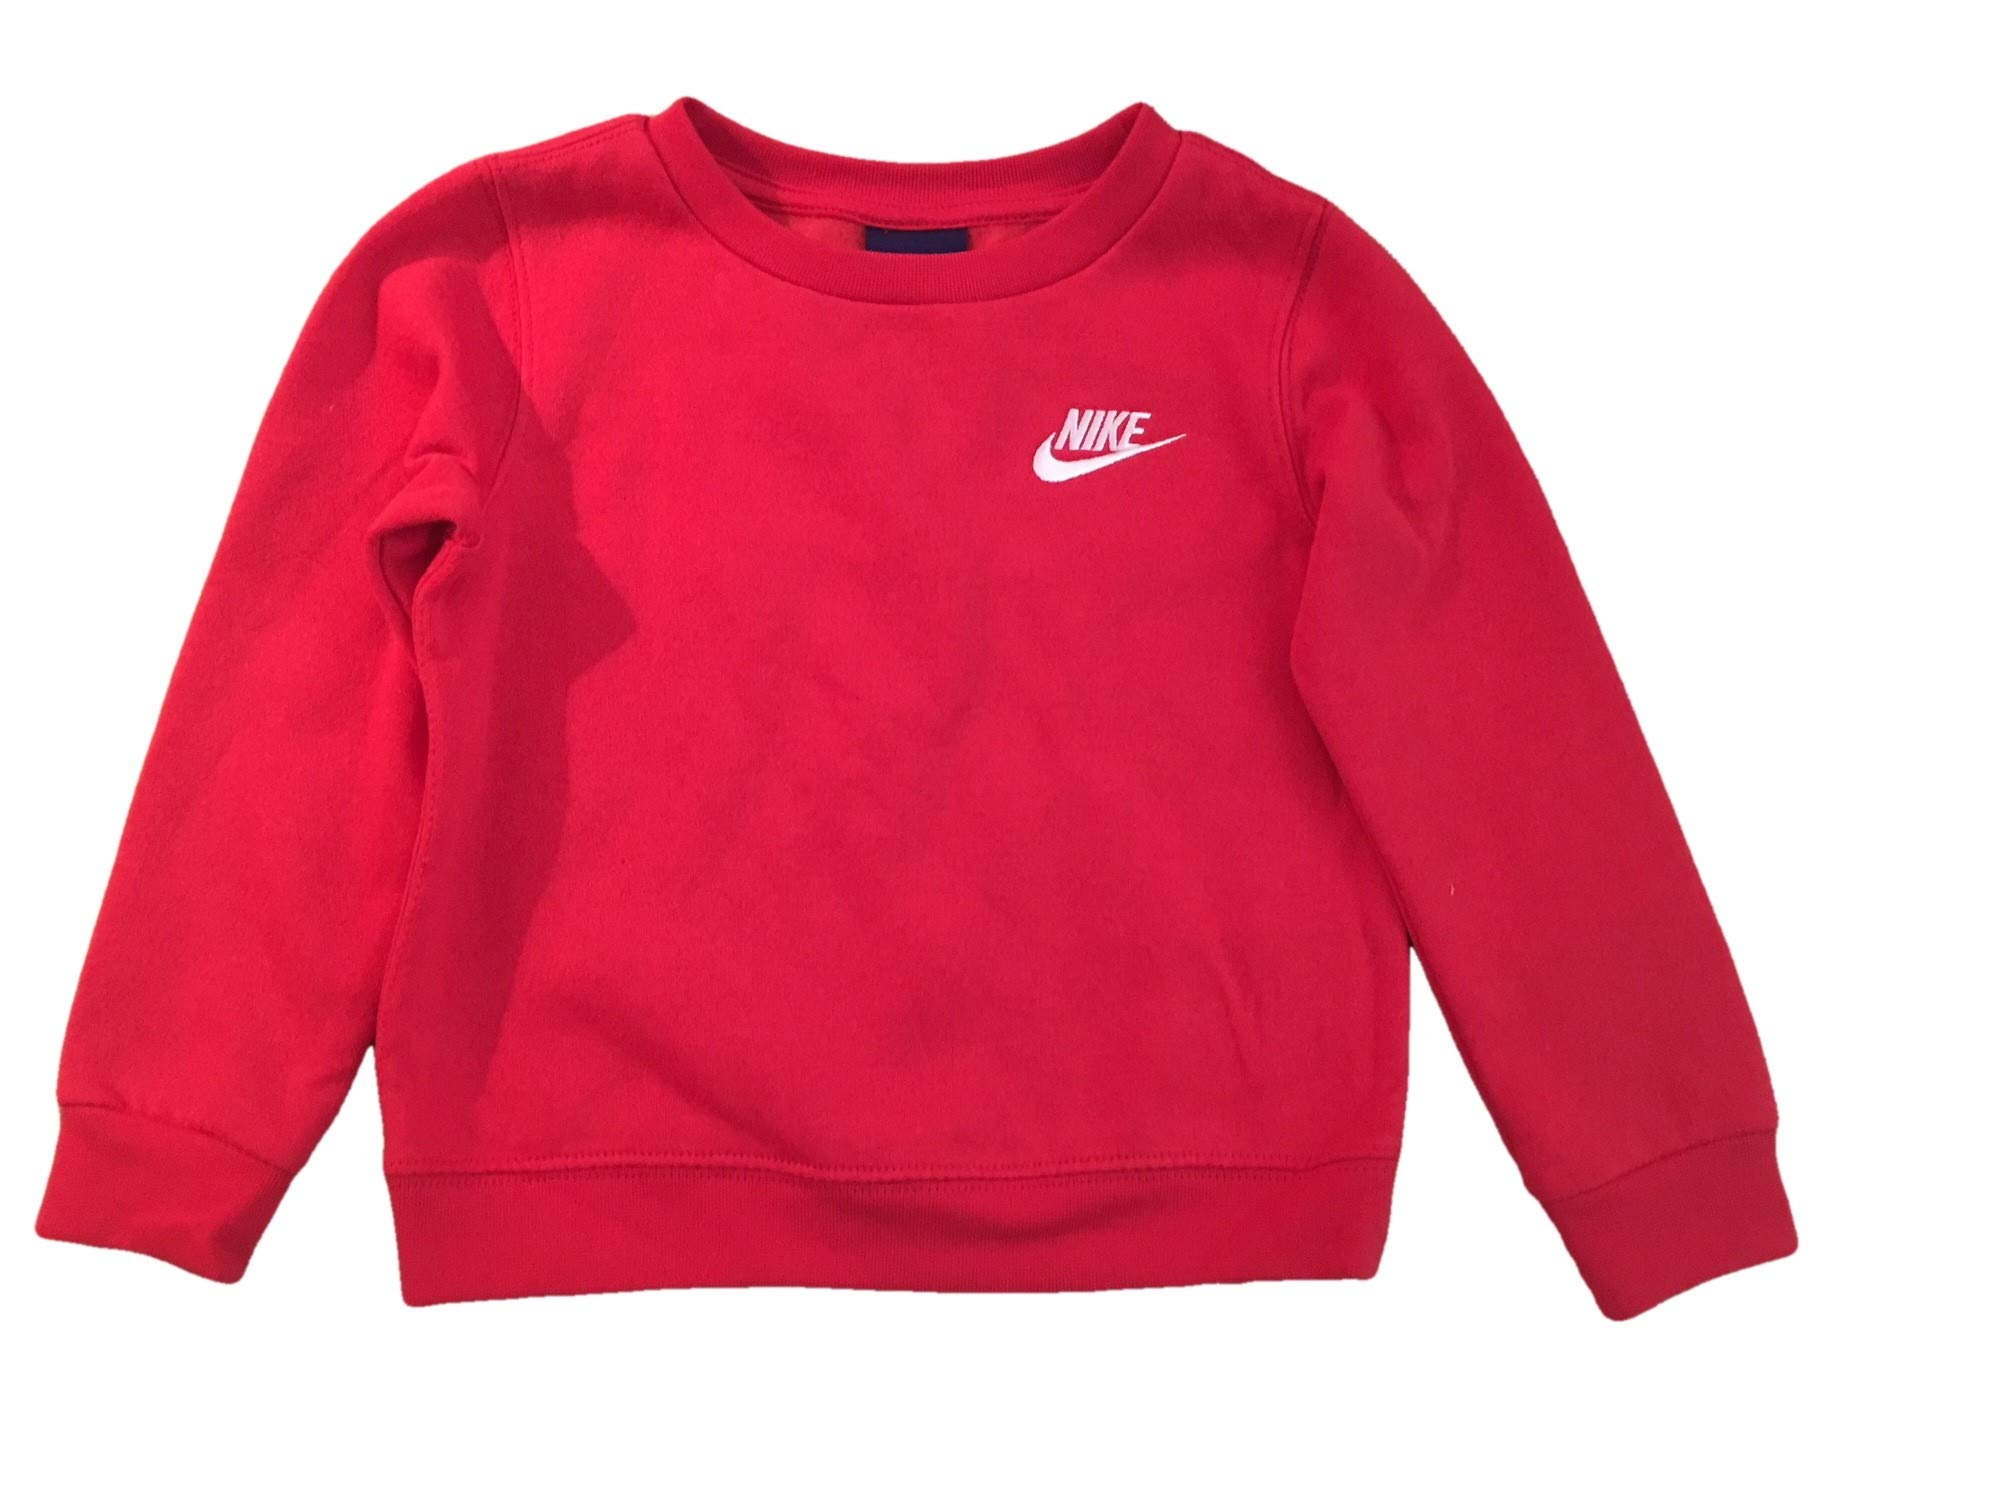 NIKE Infant Toddler Pullover Sweatshirt Top (2T, Red) by Nike